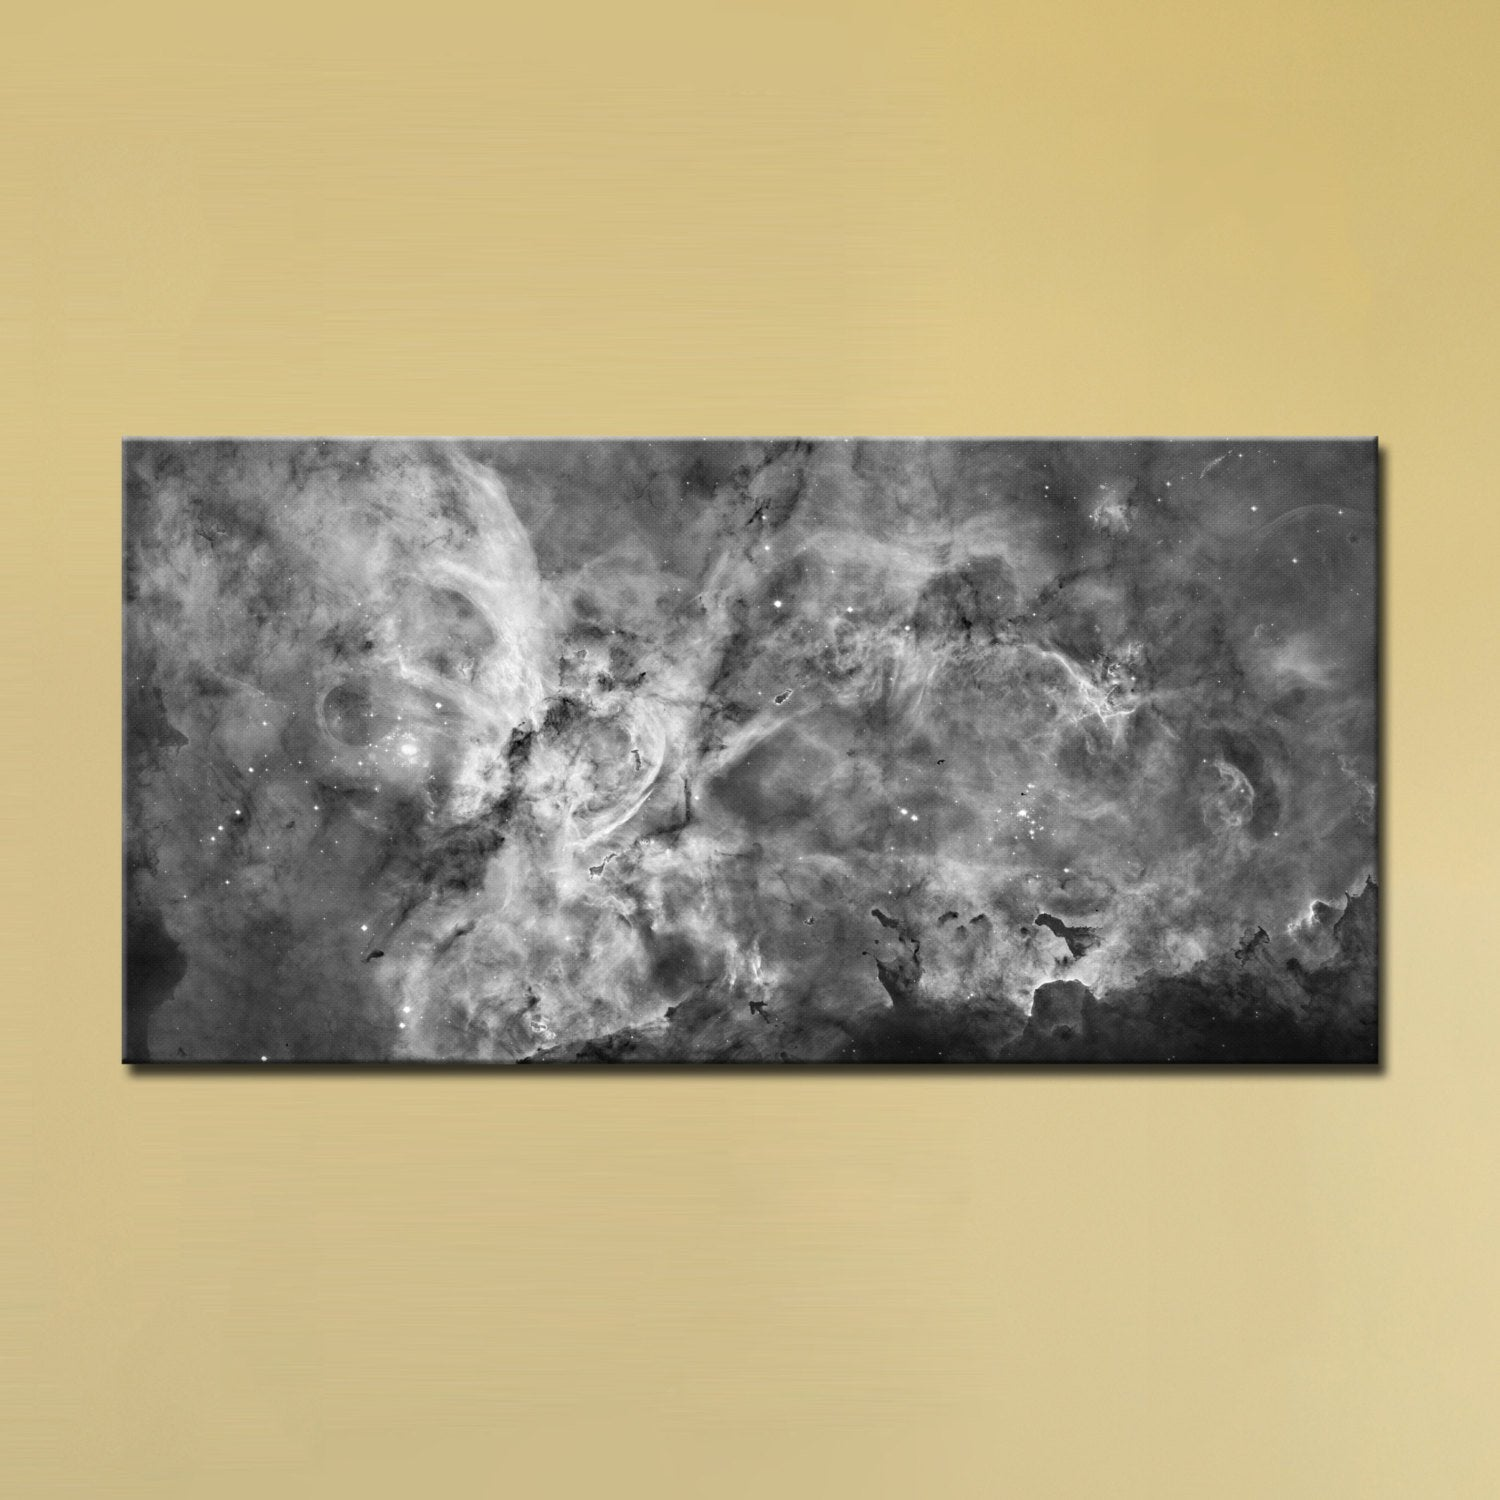 The Carina Nebula, Star Birth in the Extreme (Grayscale) (24″ x 48″) – Canvas Wrap Print